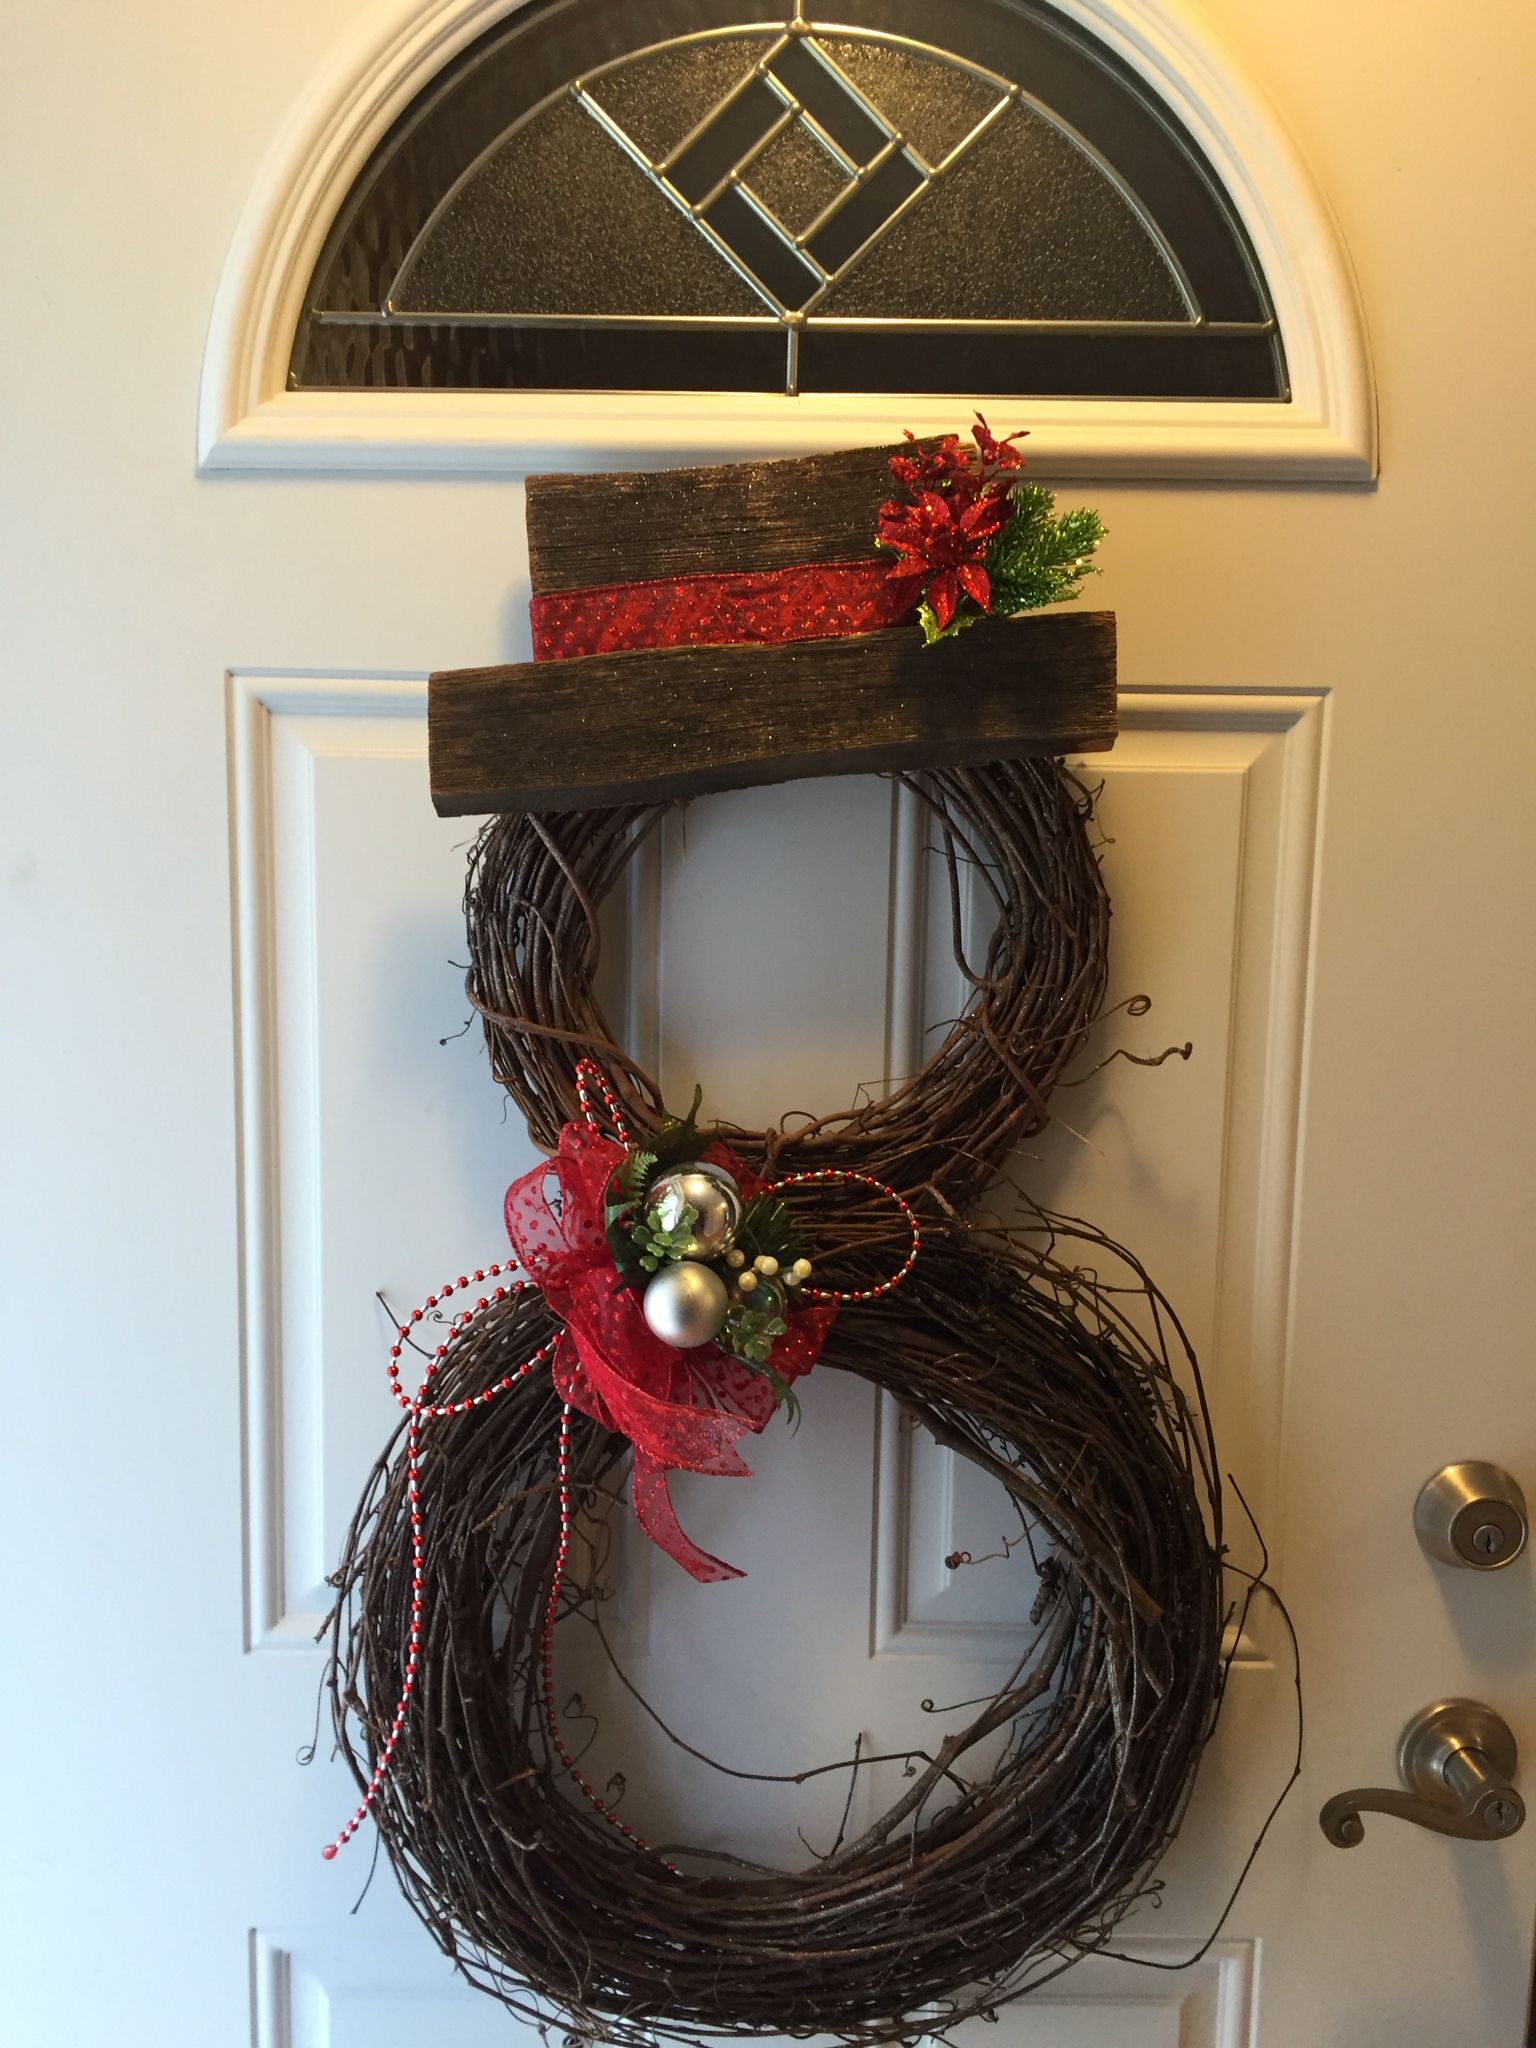 Snowman Grapevine Wreath With Recycled Barn Boards For The Hat Winter Wreath Diy Dollar Store Christmas Decorations Storing Christmas Decorations